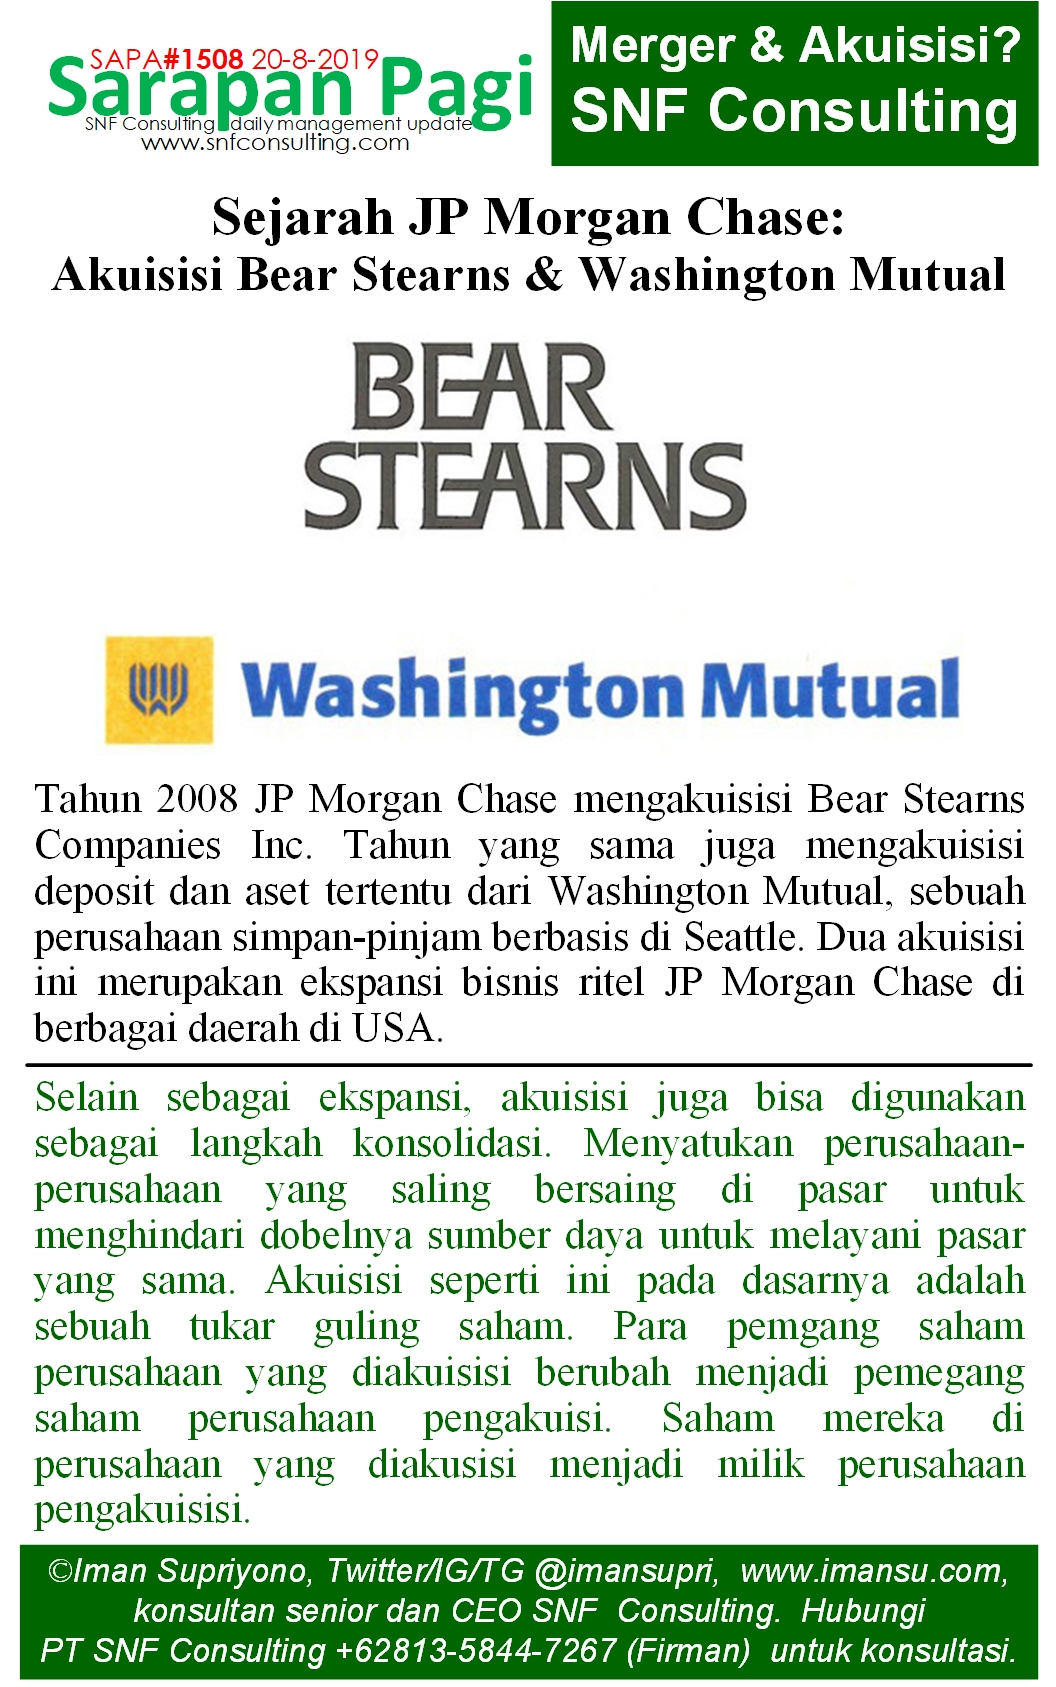 SAPA1508 Sejarah JP Morgan Chase akuisisi bear stern n washington mutual